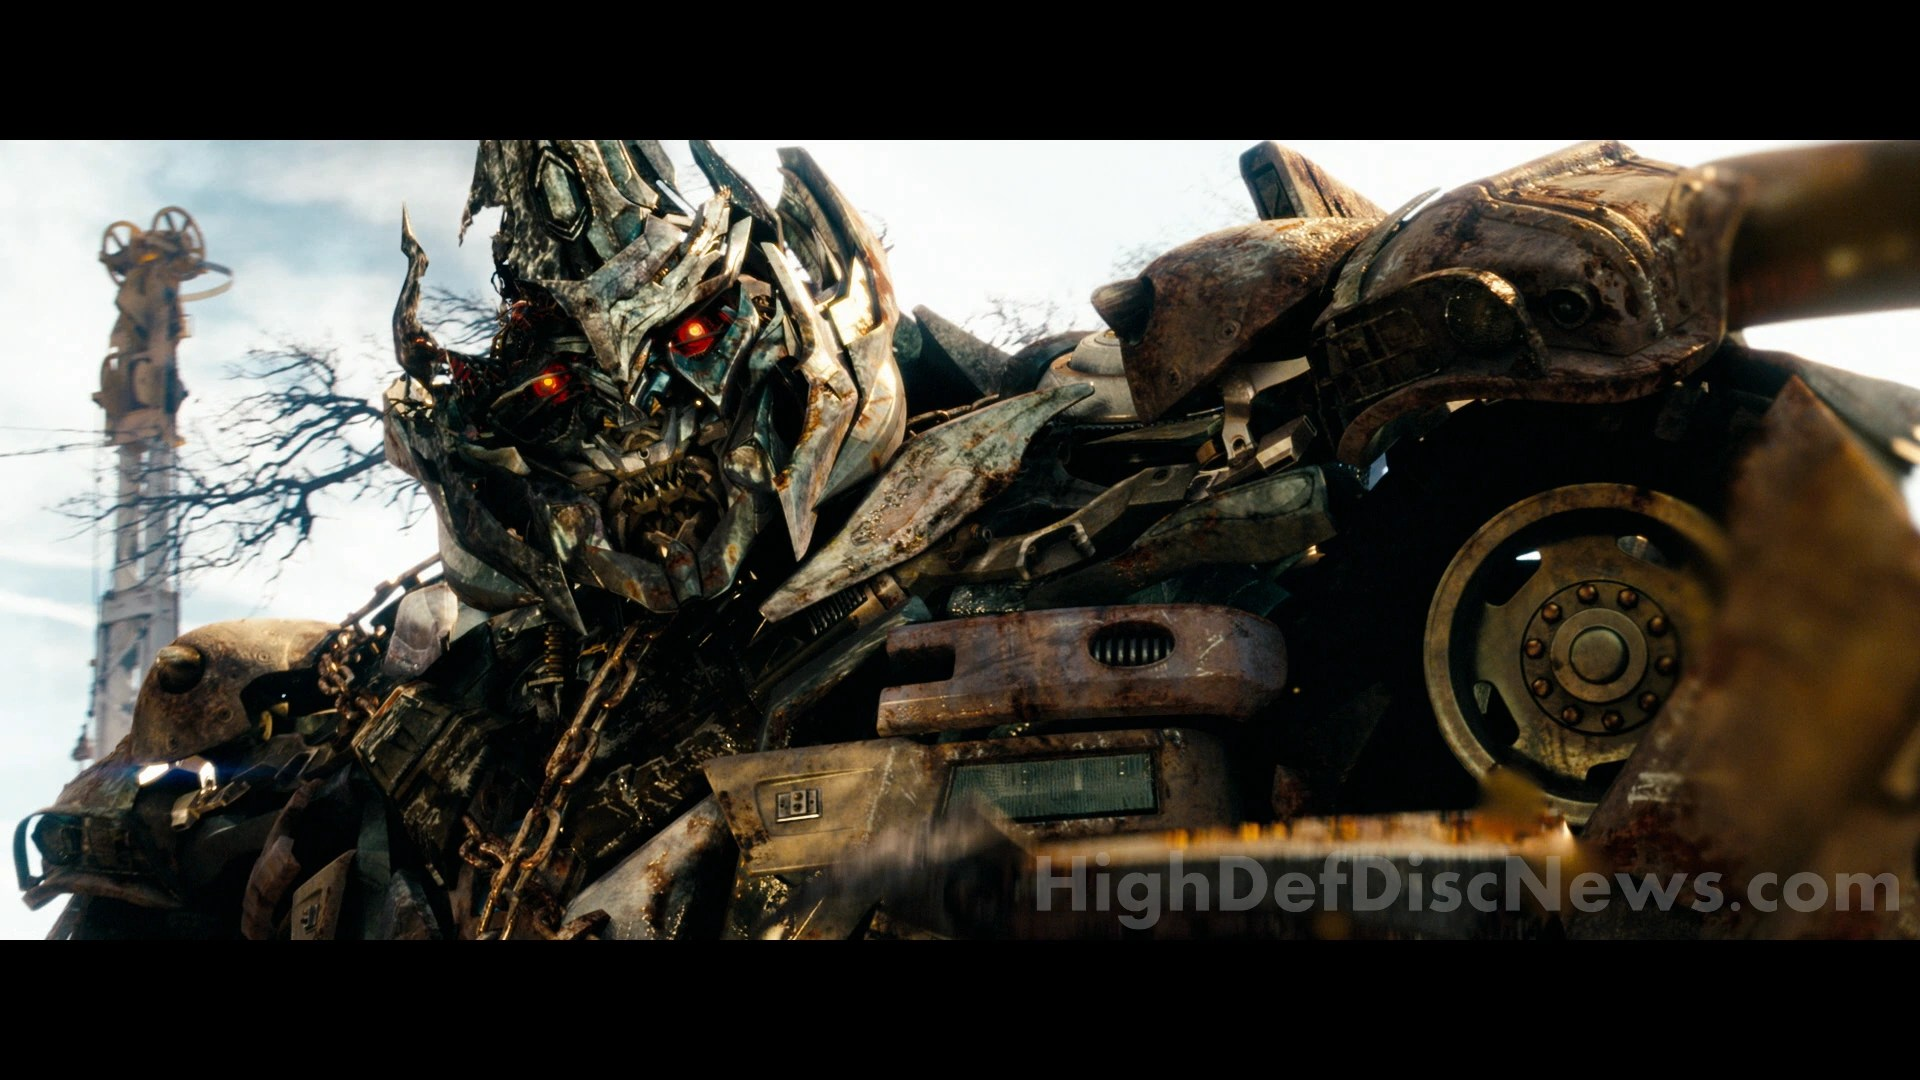 Transformers Fall Of Cybertron Hd Wallpapers 1080p Image Dotm Megatron Film Africa Face Png Teletraan I